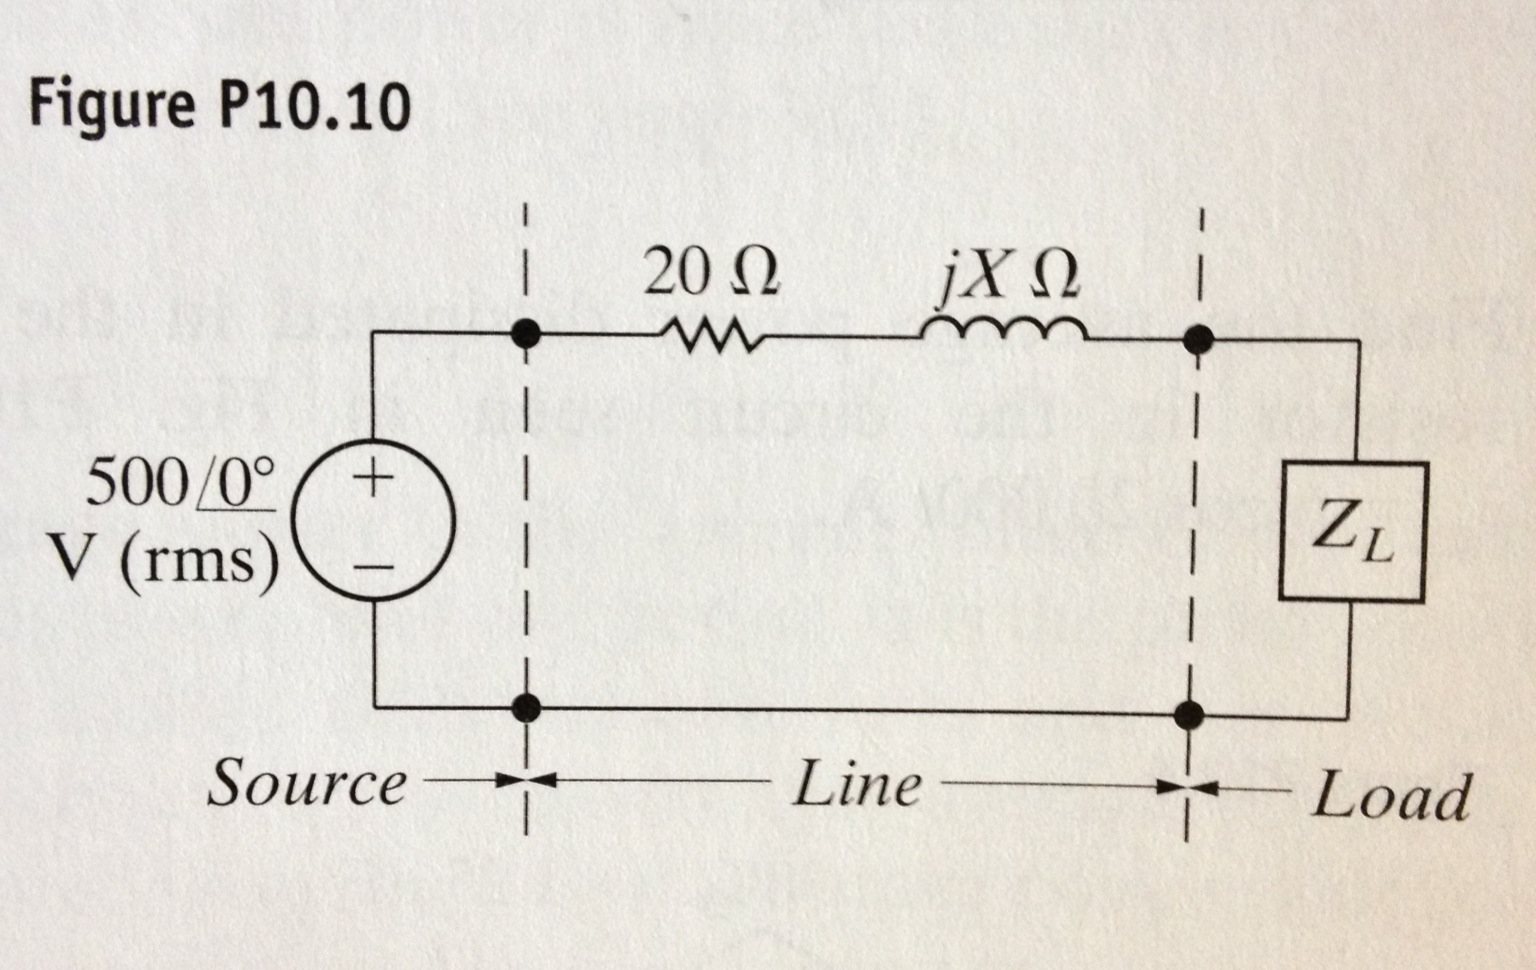 The load impedance in the figure below absorbs 250